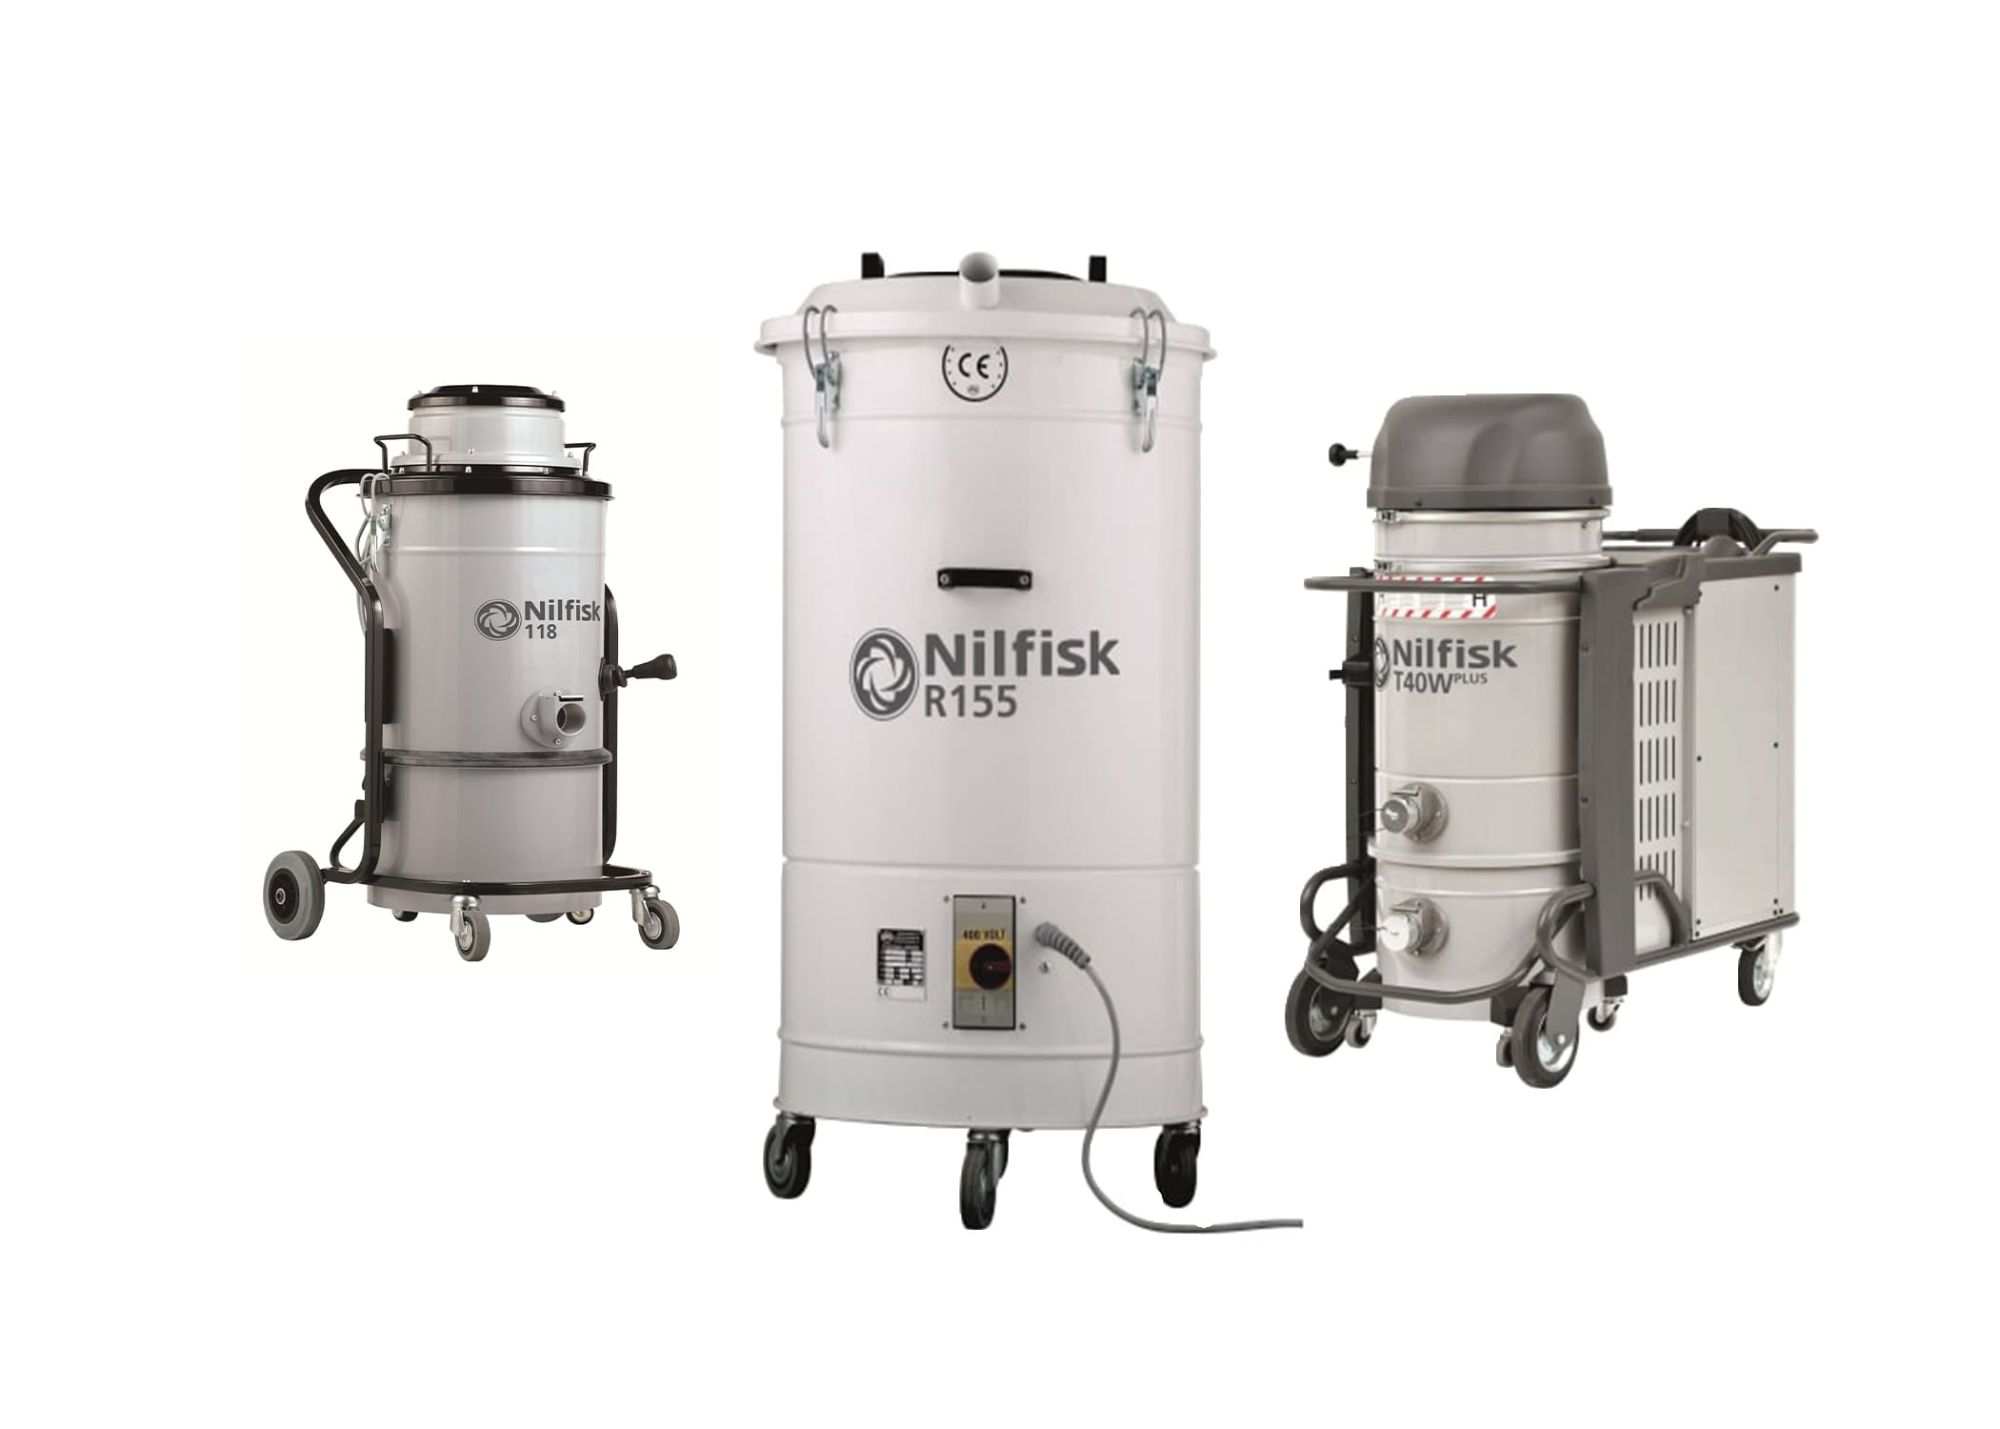 Nilfisk Industrial Vacuum Cleaners